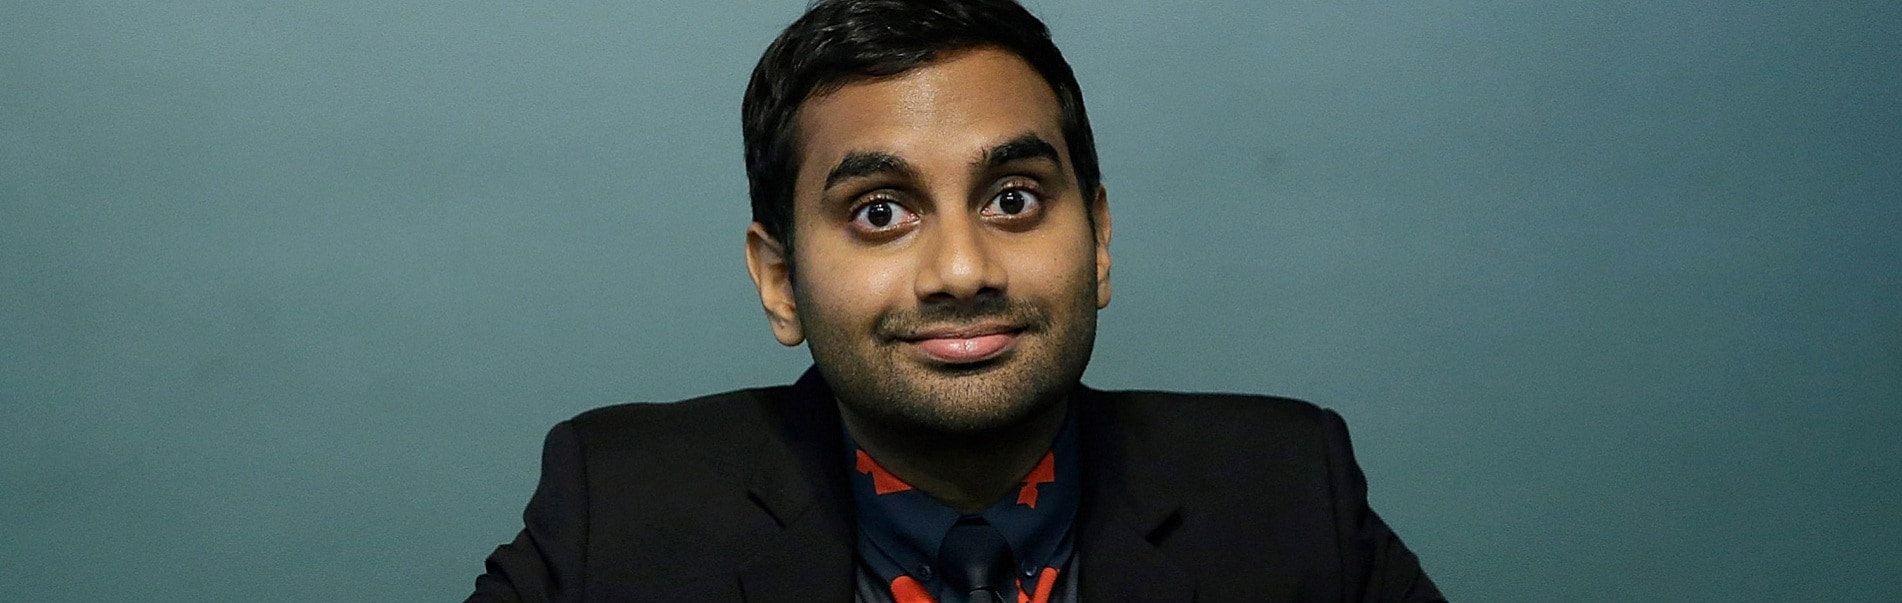 Aziz Ansari and the problem with 'male feminists': It's time to look beyond labels and pins on tuxedos